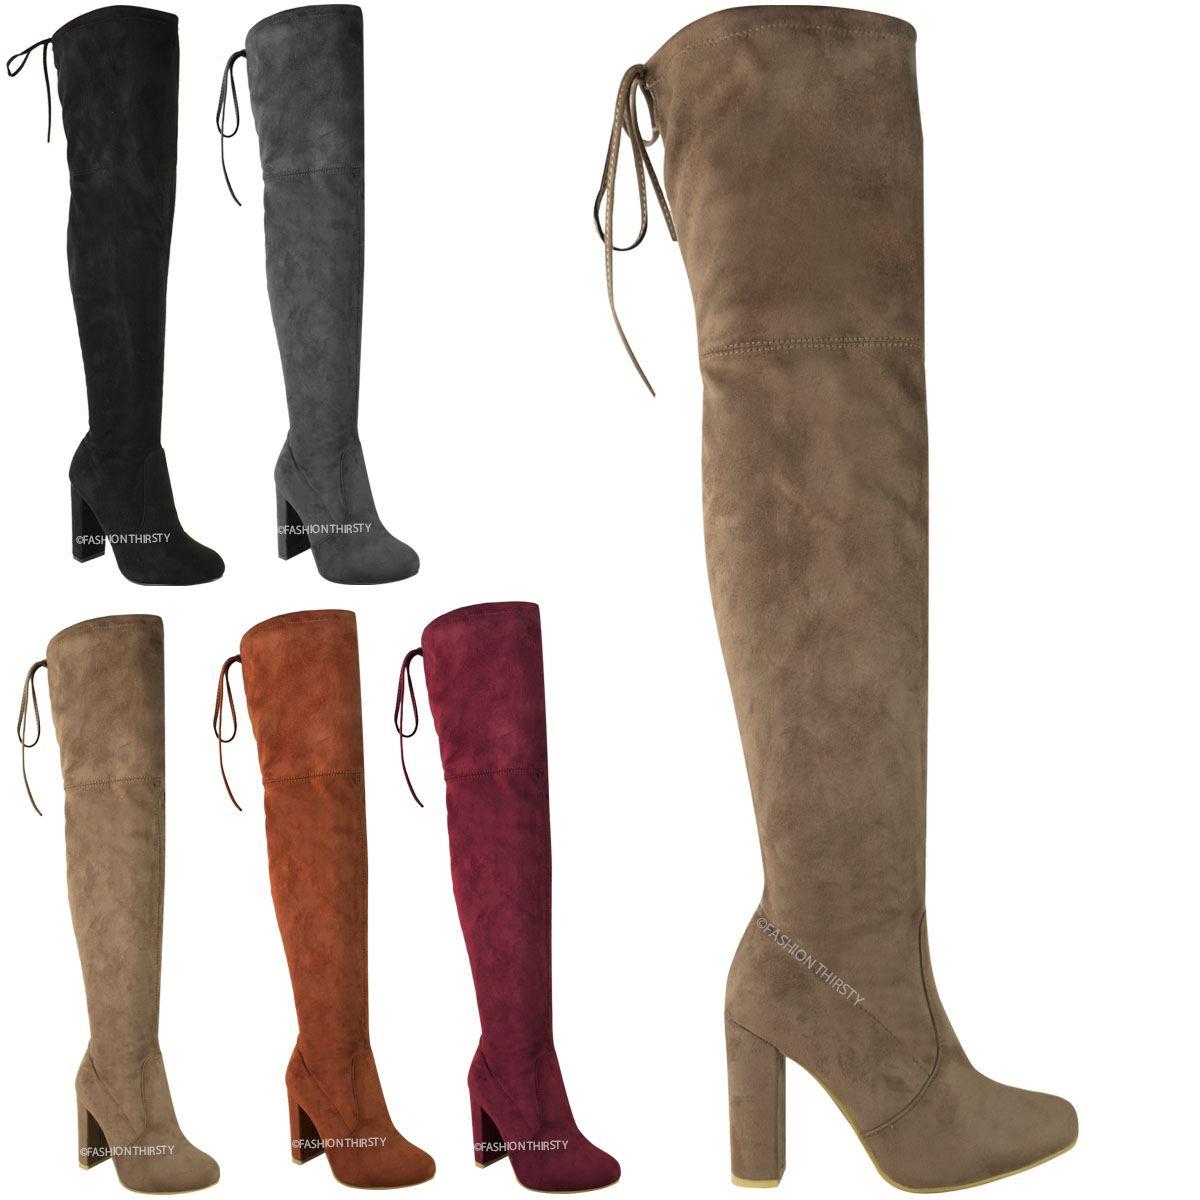 Stretch Thigh High Boots iVBD0v7V